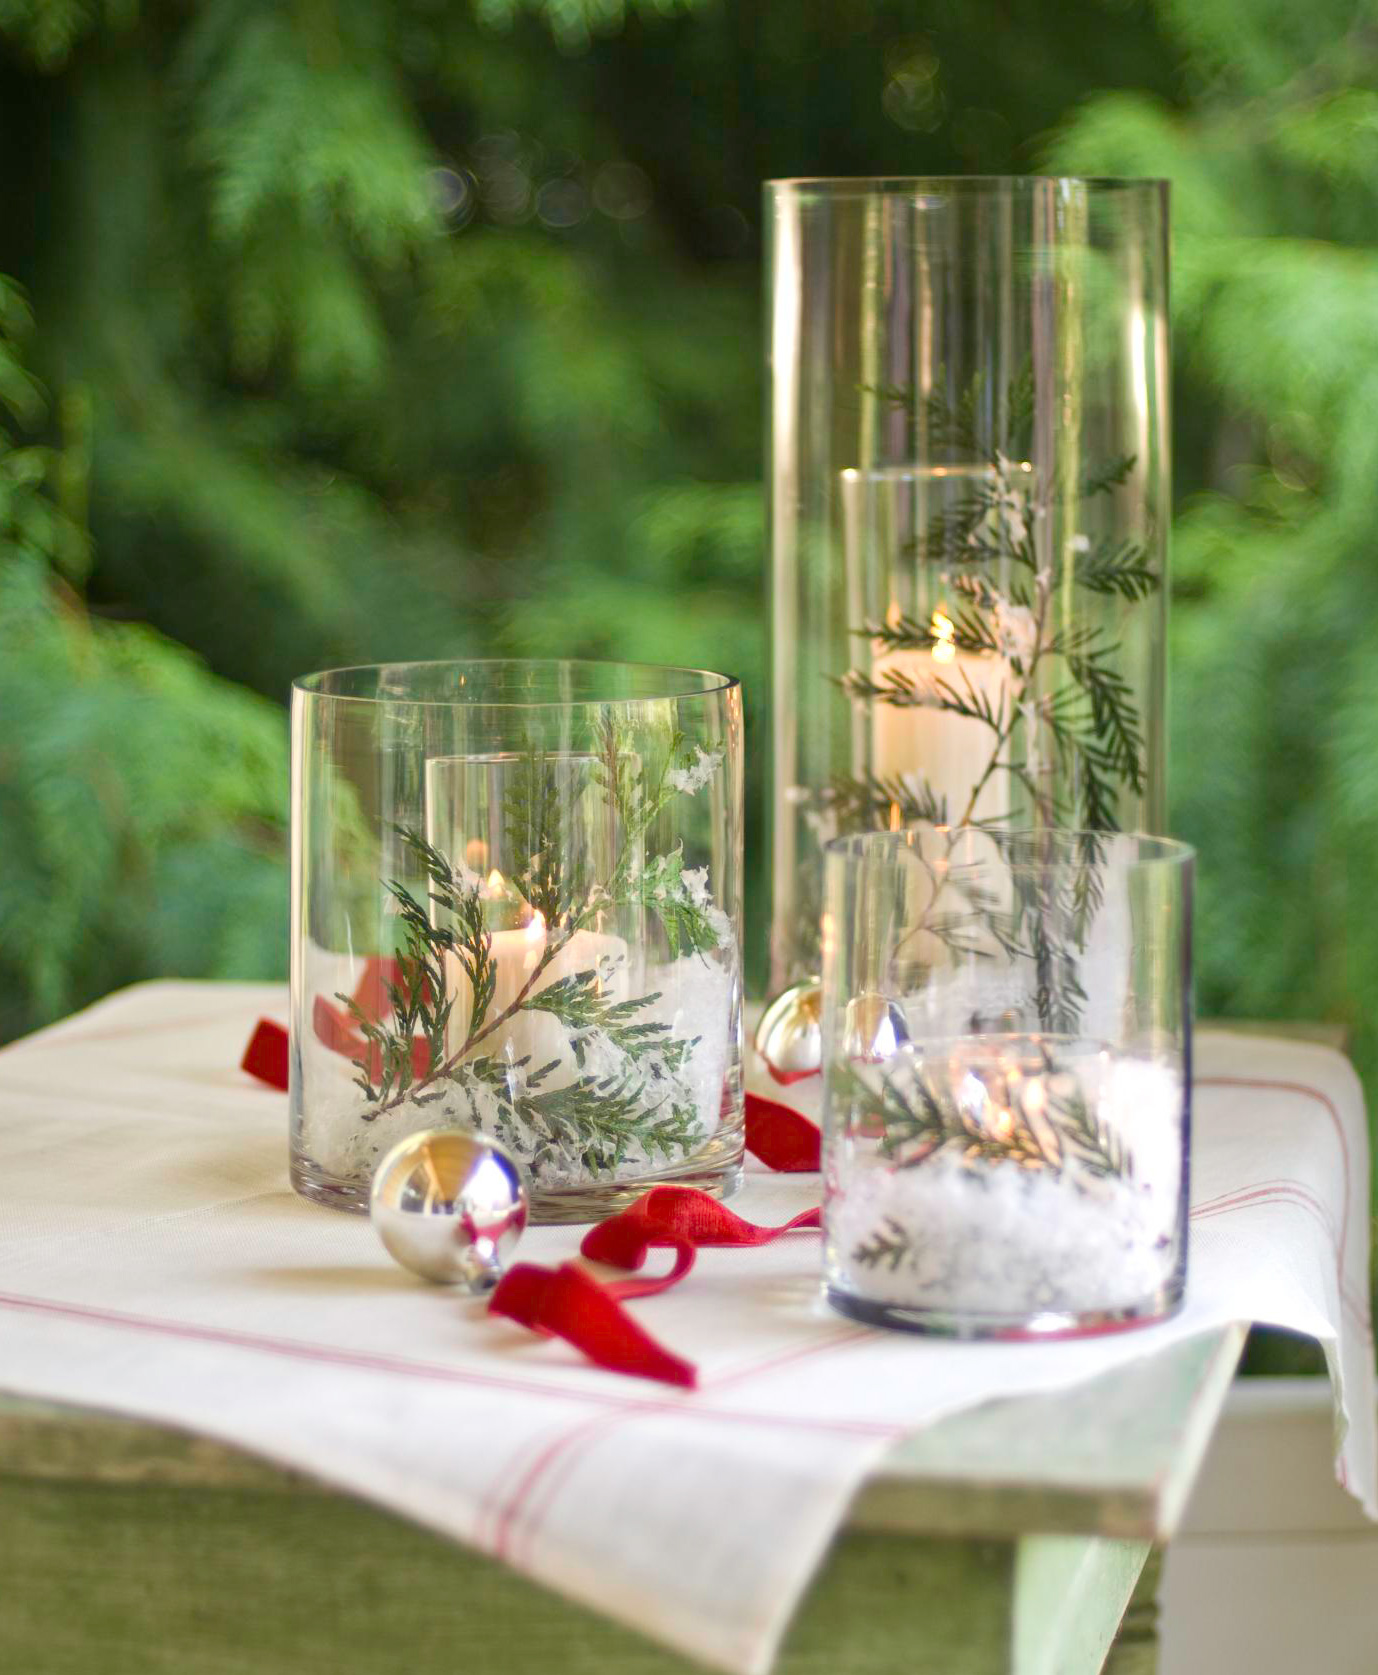 Christmas centerpiece ideas: candles